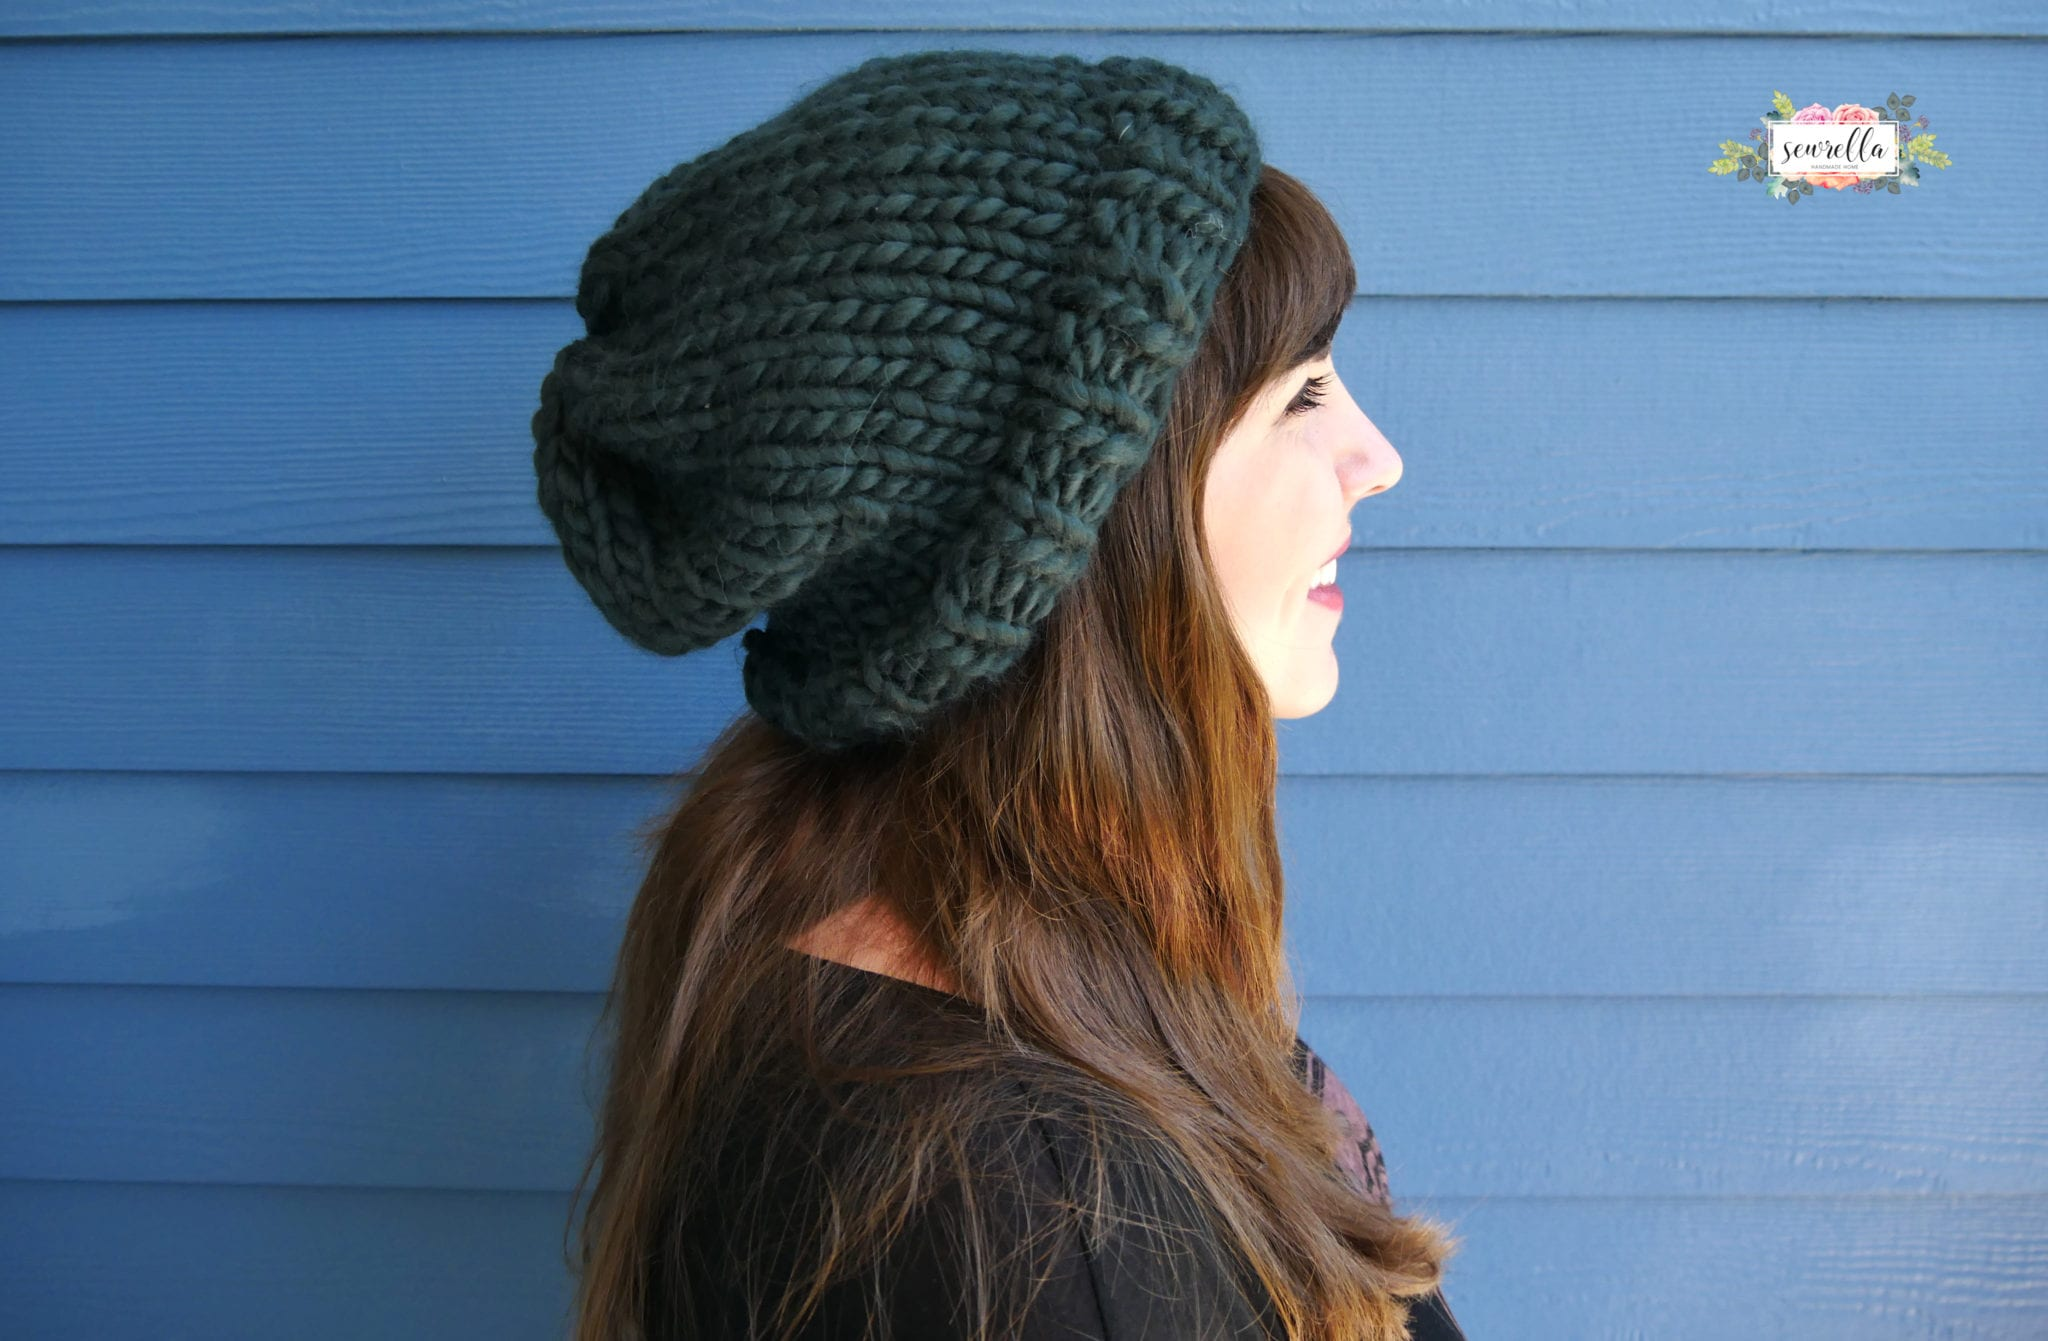 How to Knit a Basic Hat - Sewrella